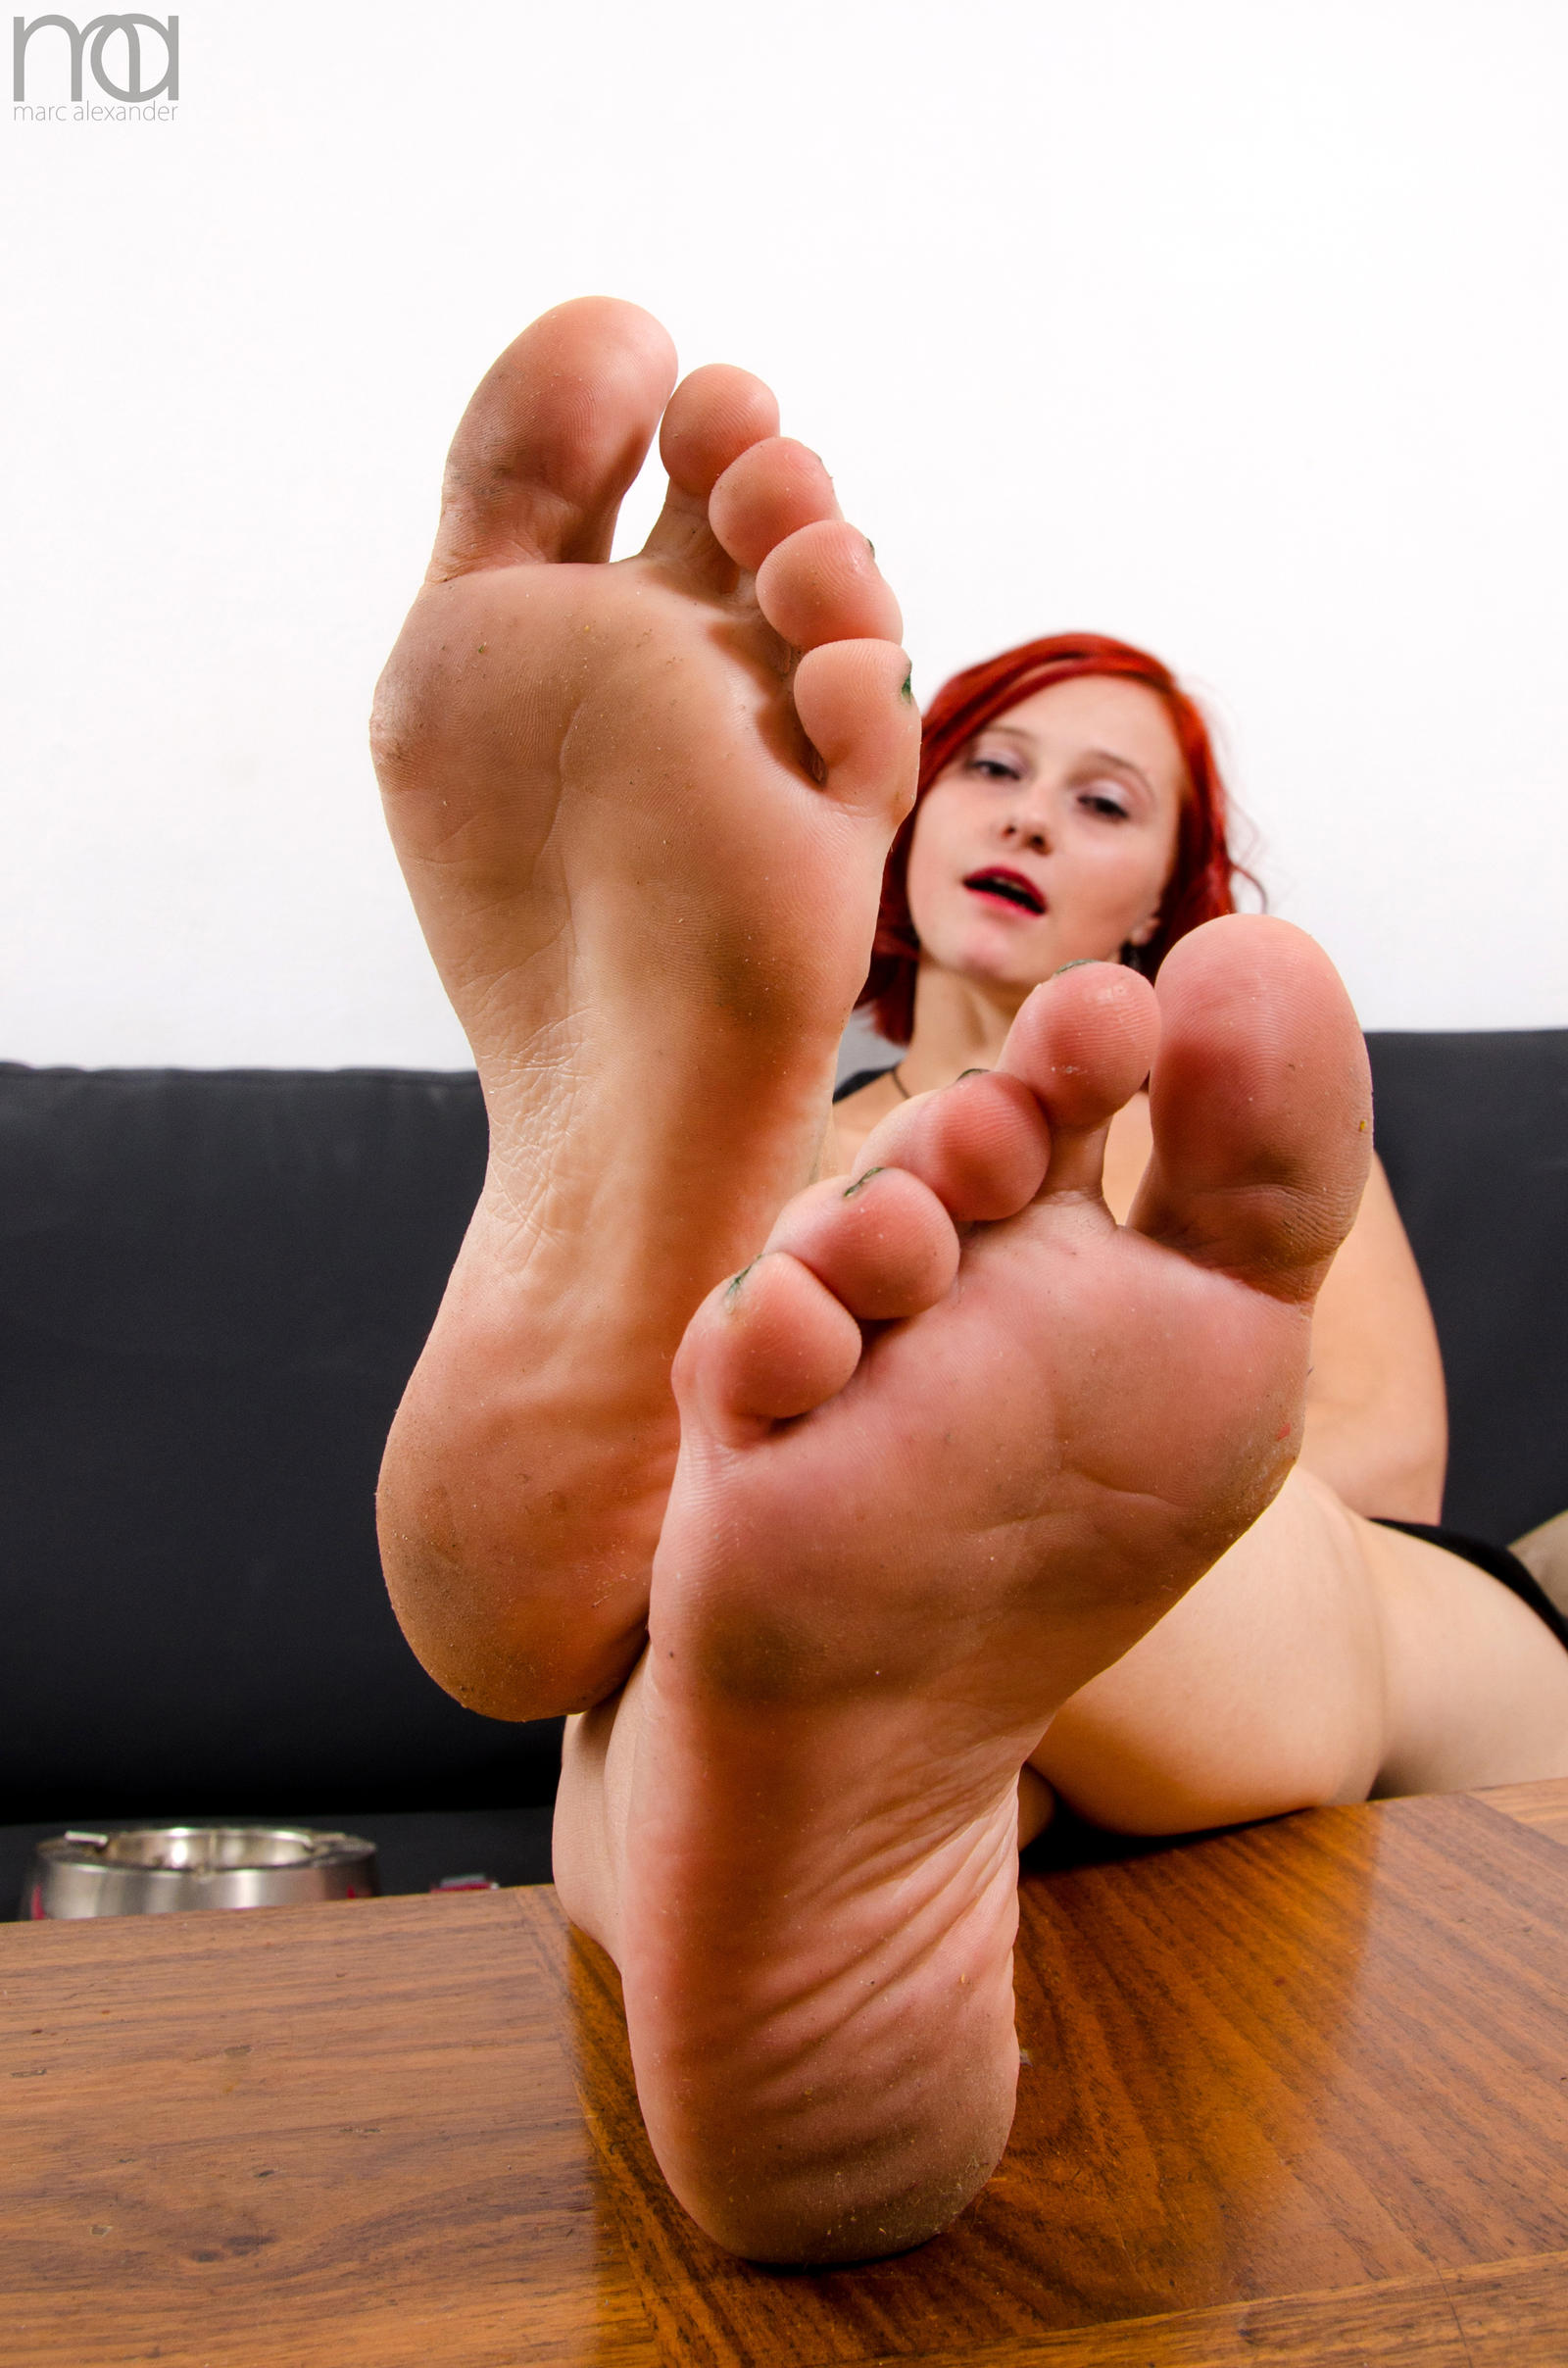 Red lipped Michelle Moist licks her bare toes and flaunts her sexy feet № 658405 бесплатно